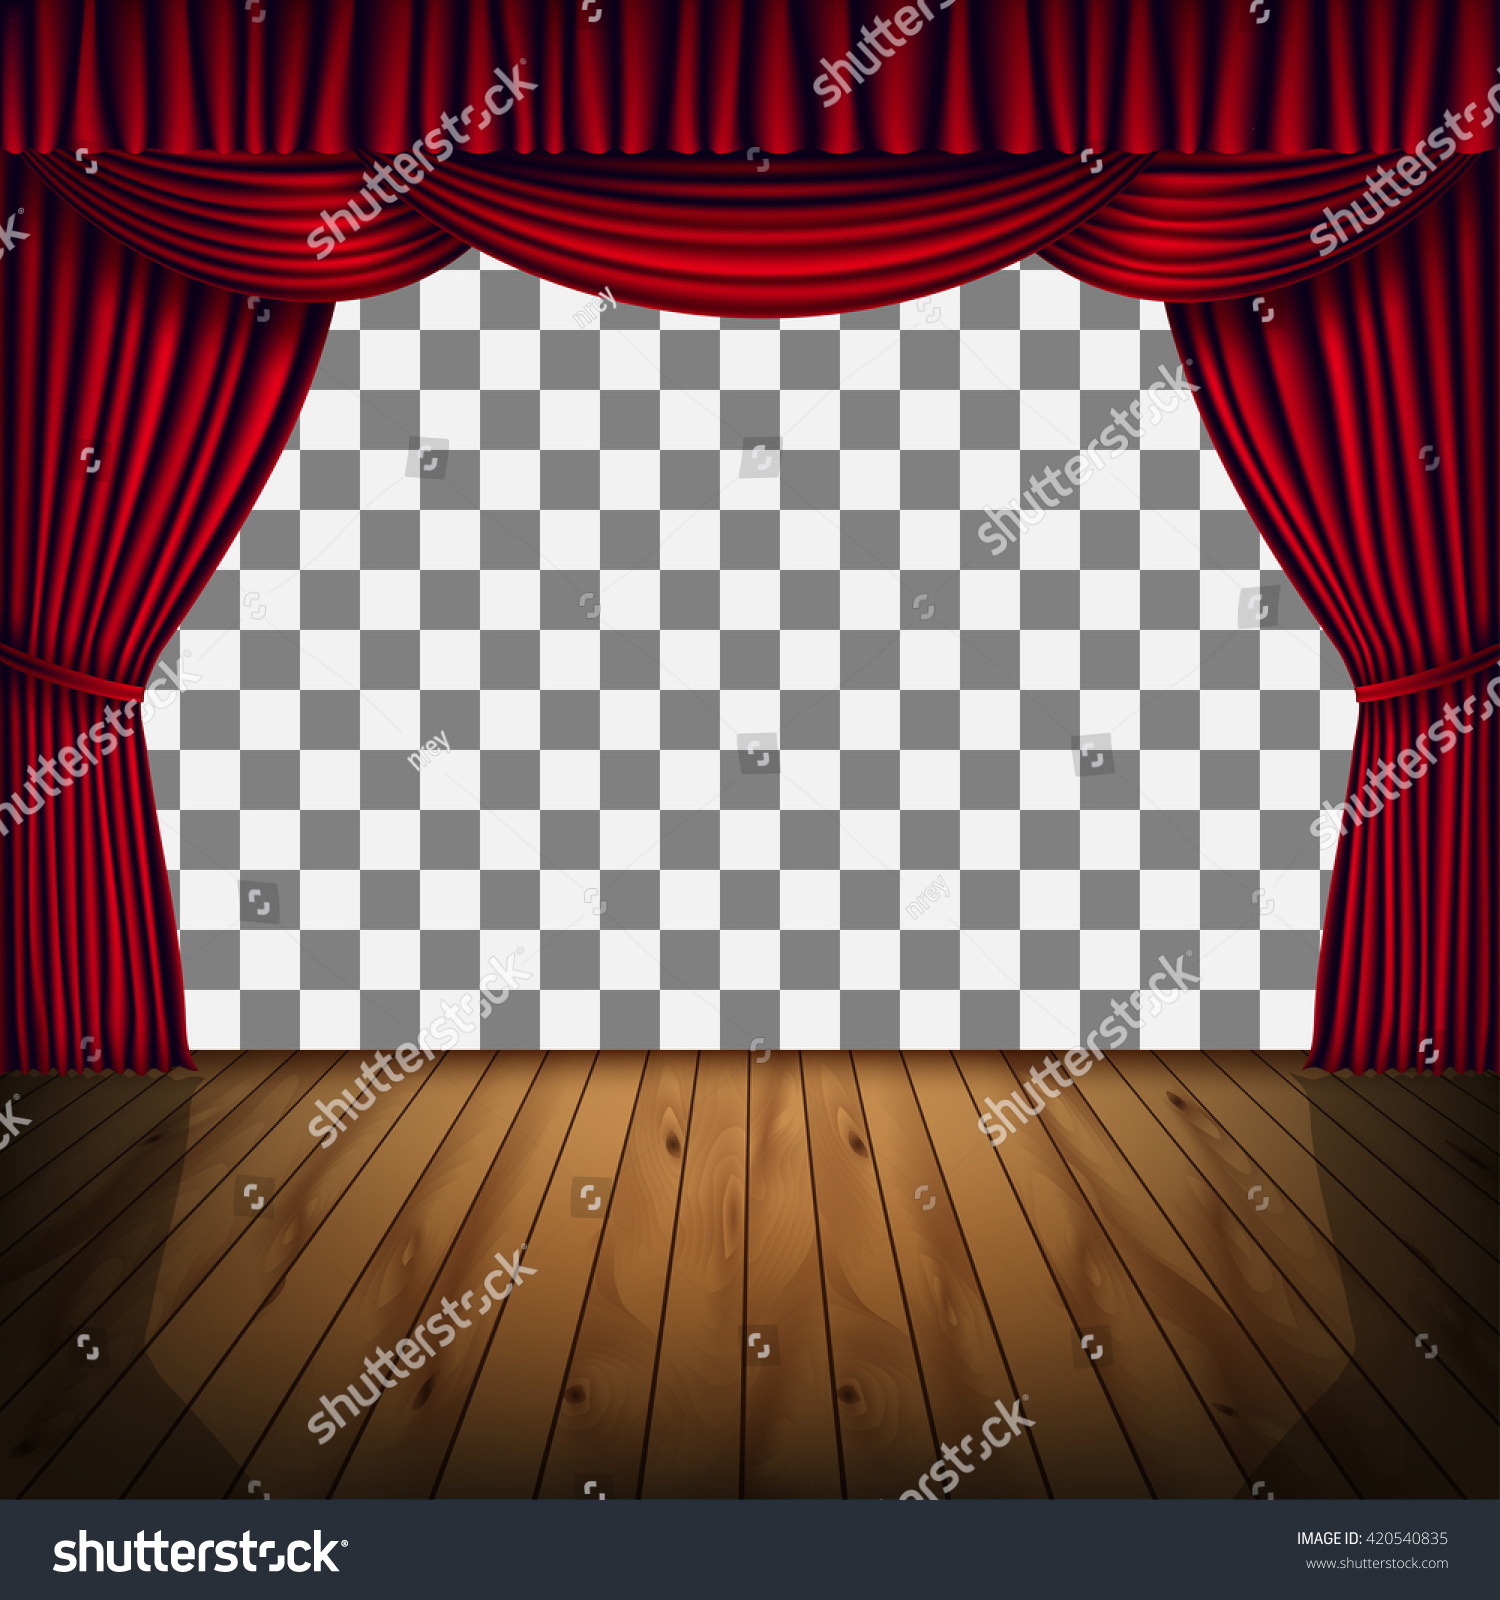 Transparent frame of stage with red curtain background with red curtain and a wooden floor